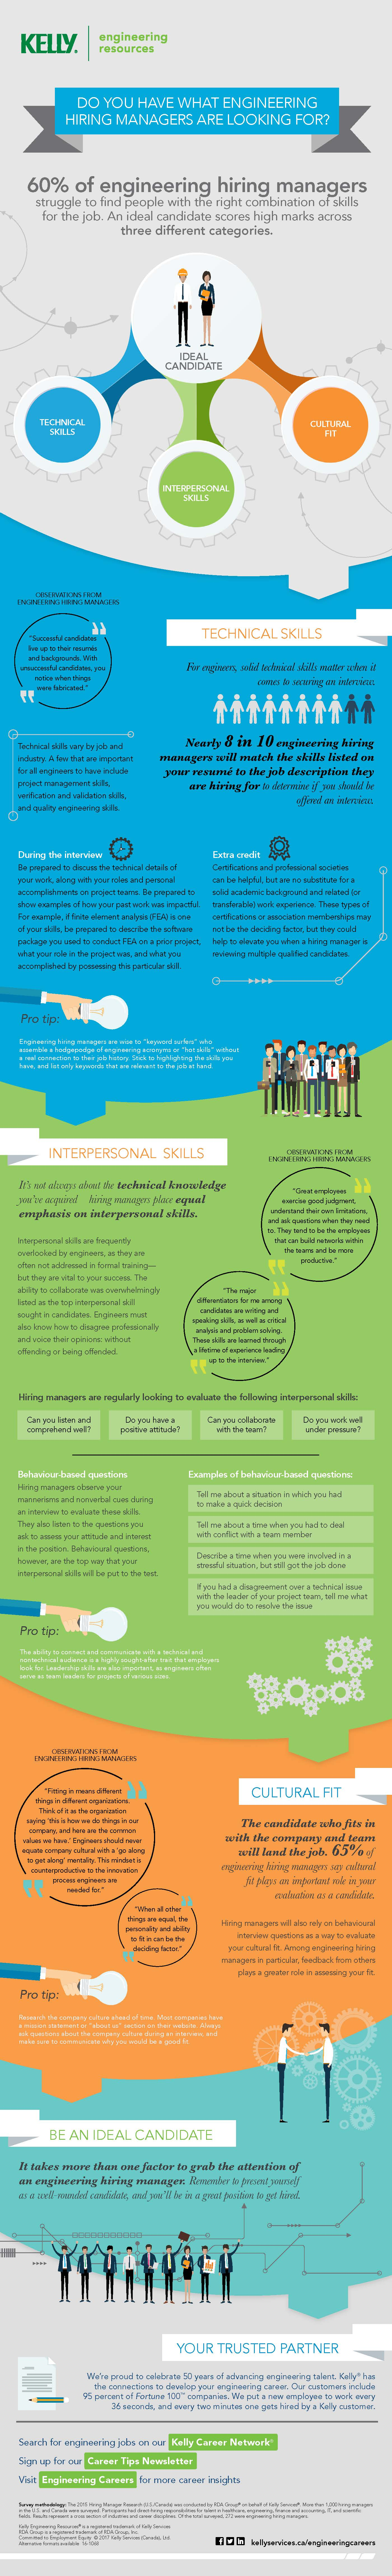 What Engineering Hiring Managers Look For - Infographic